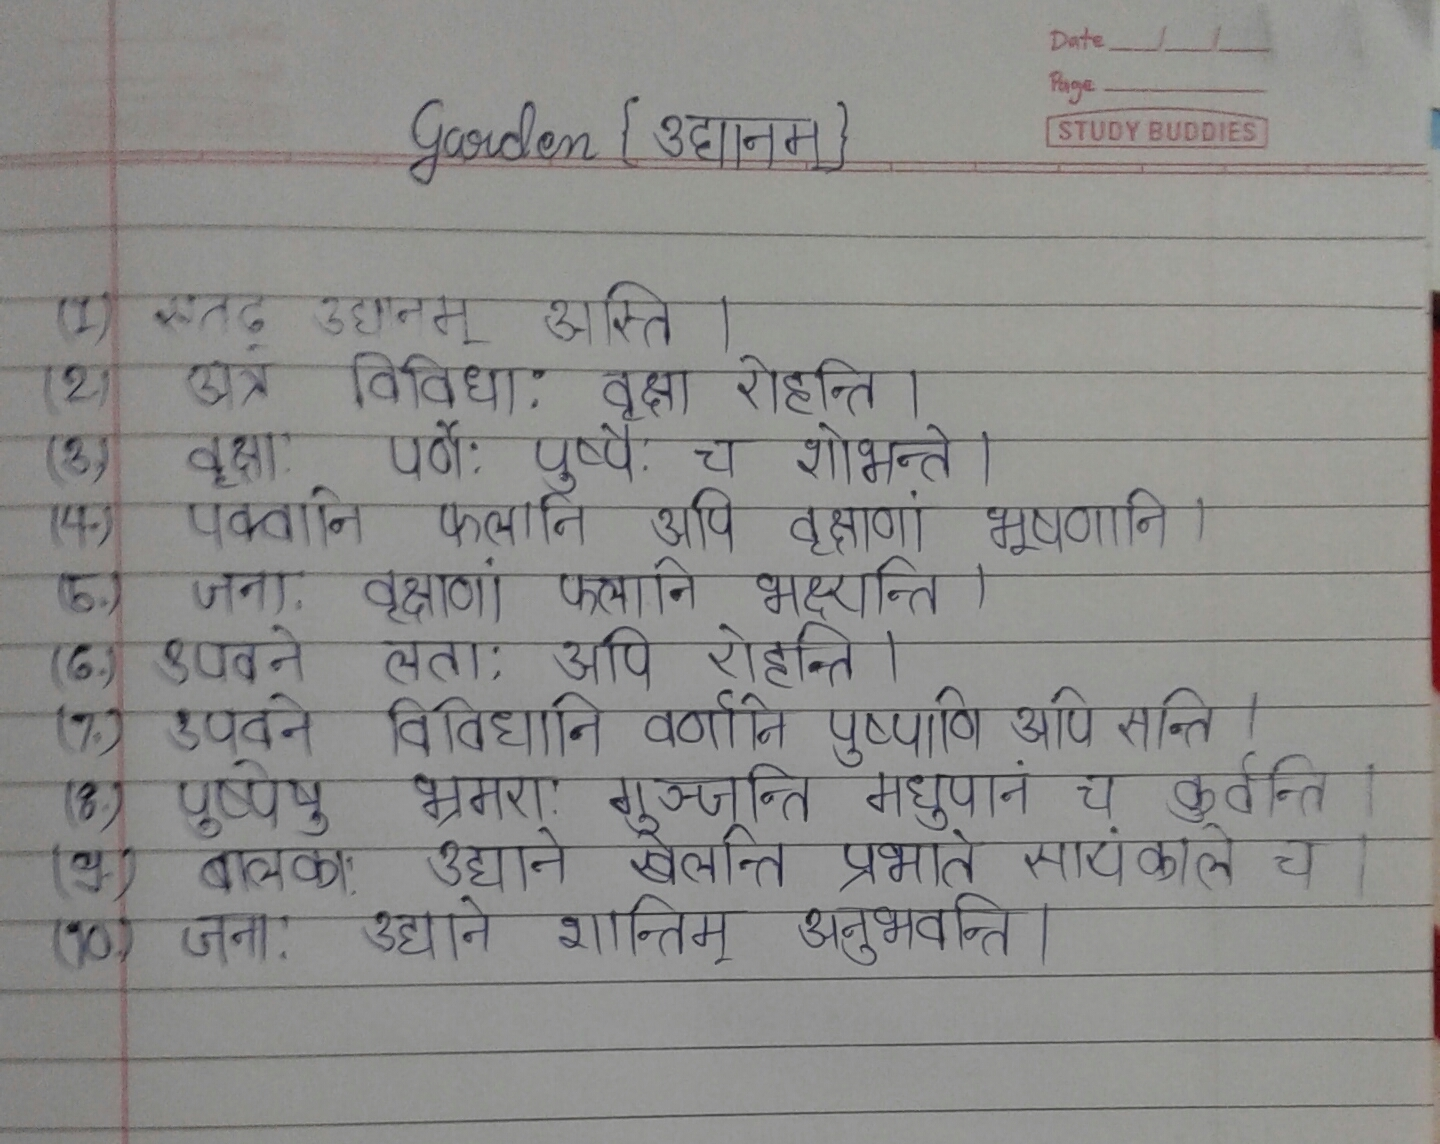 udyanam essay in sanskrit language